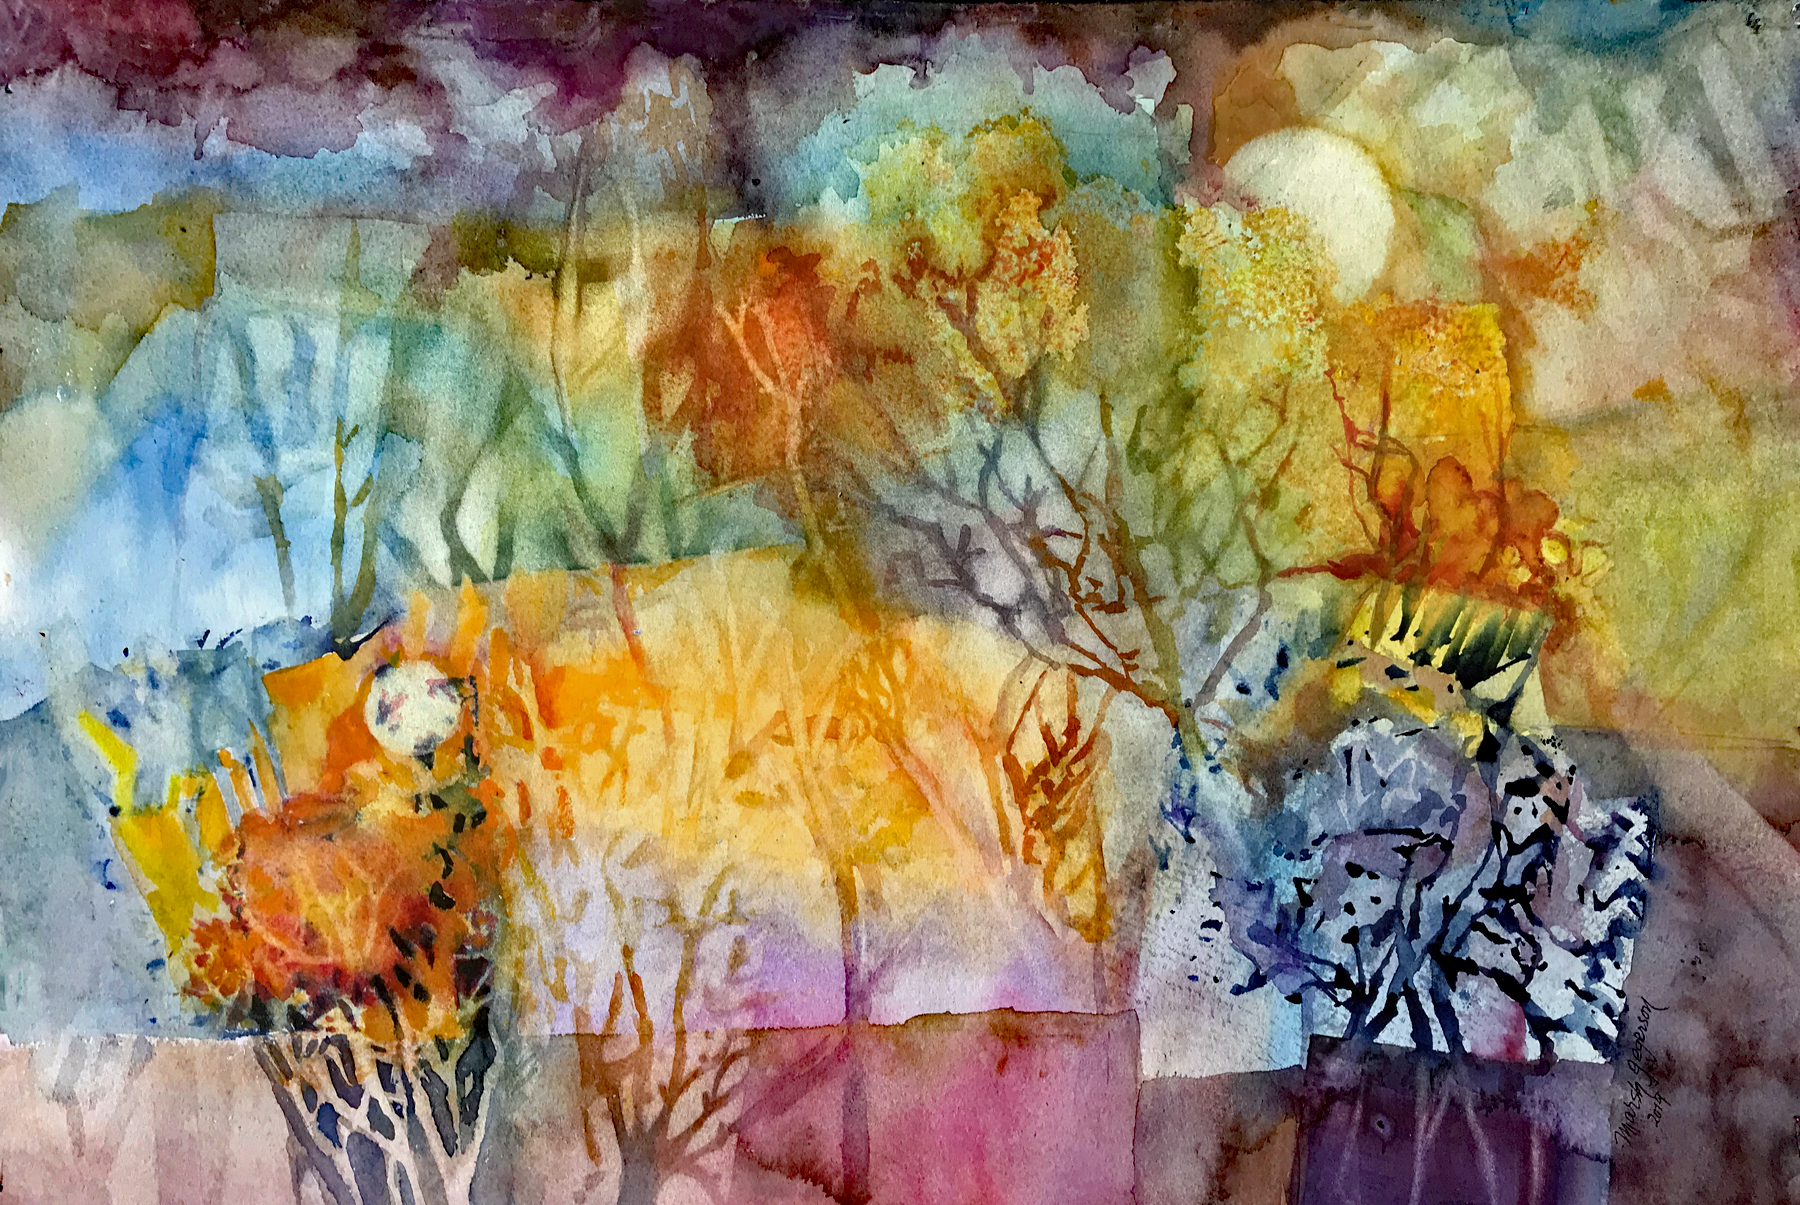 Watercolor, Mist, soft trees,  rainbow colors and a fading moon